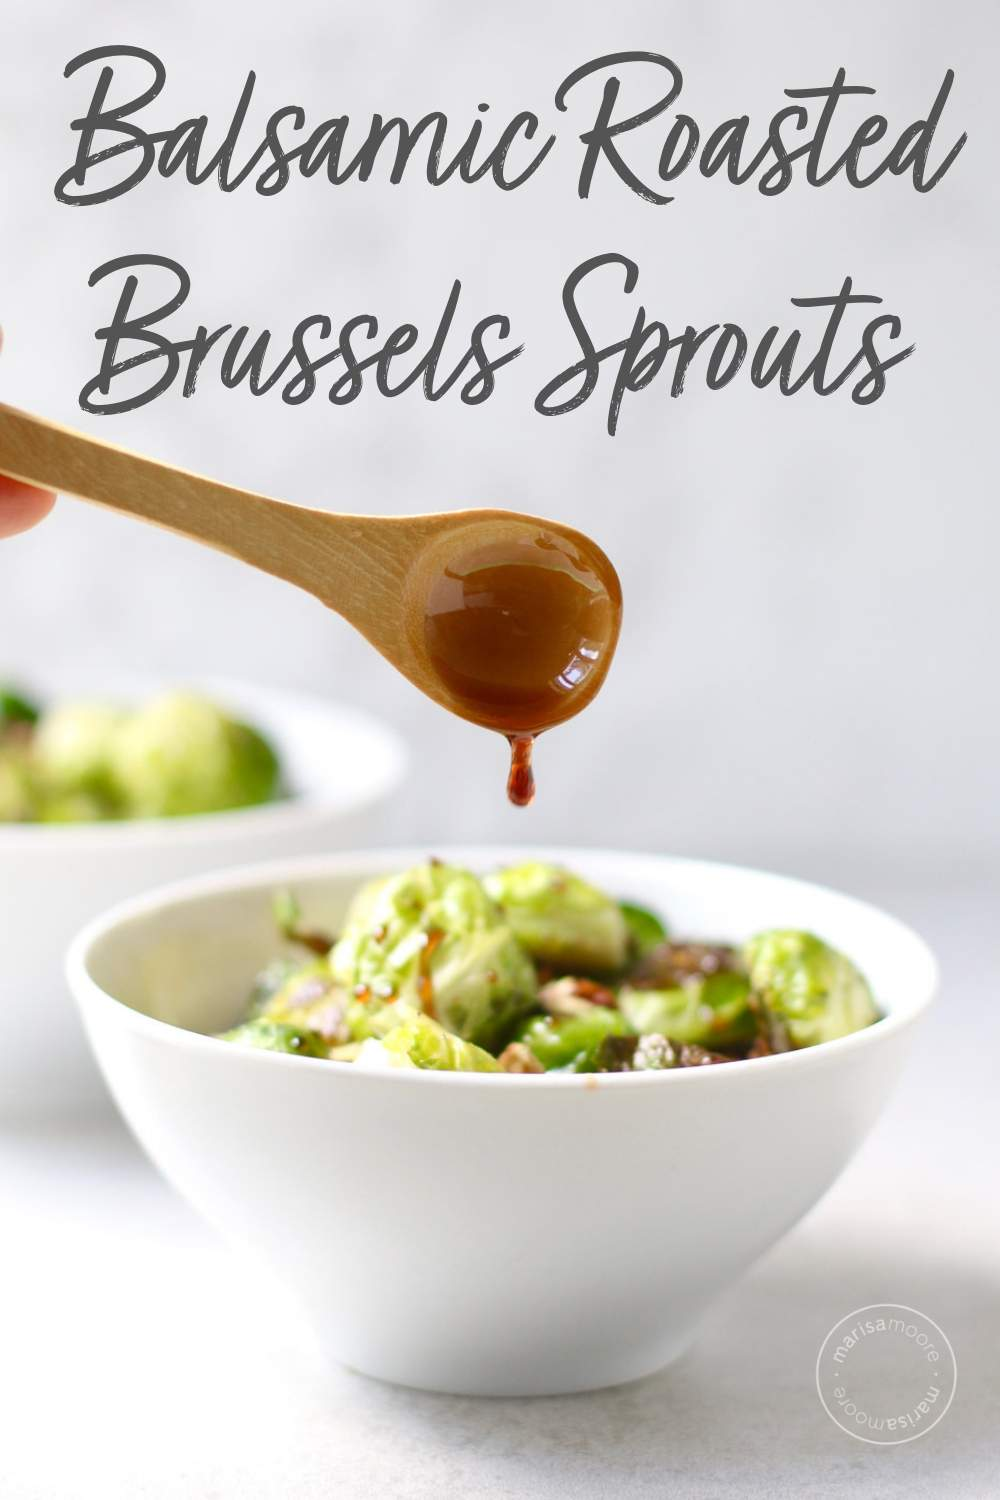 Roasted brussels sprouts in bowl with balsamic glaze on a spoon